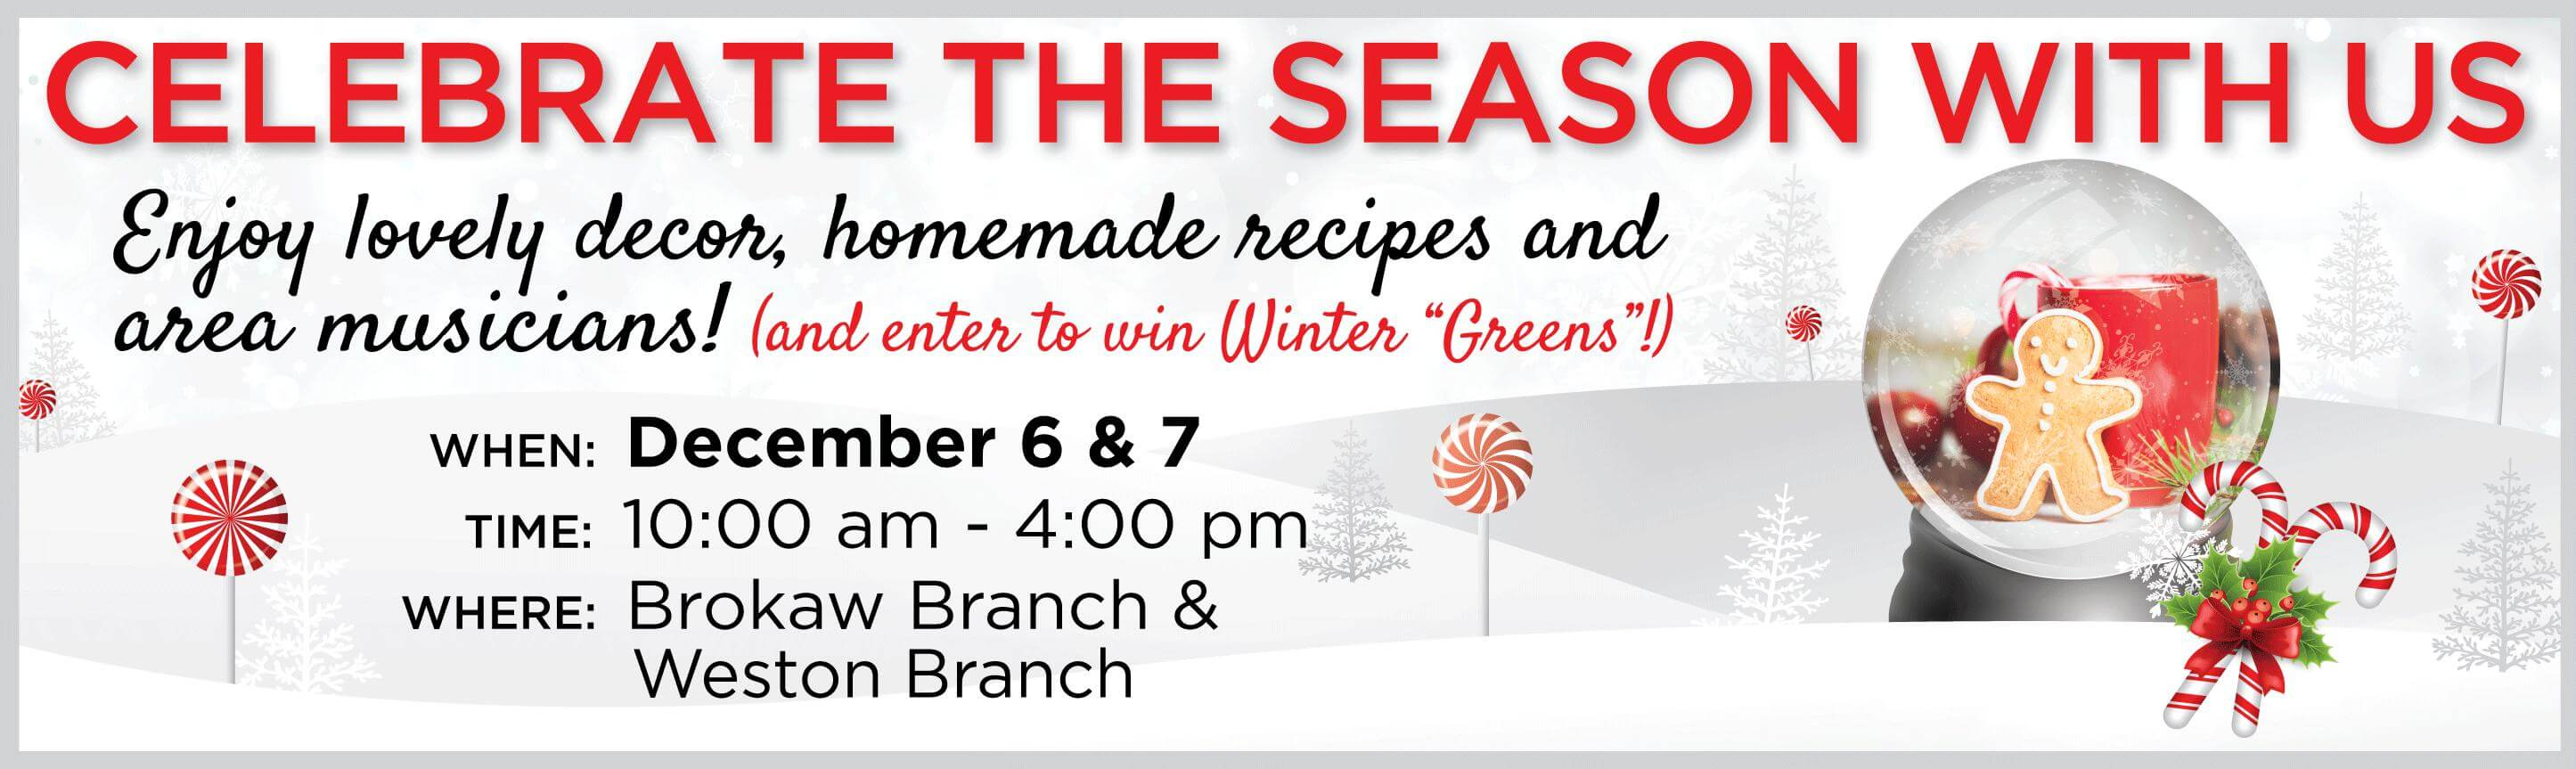 Celebrate the Season With Us!